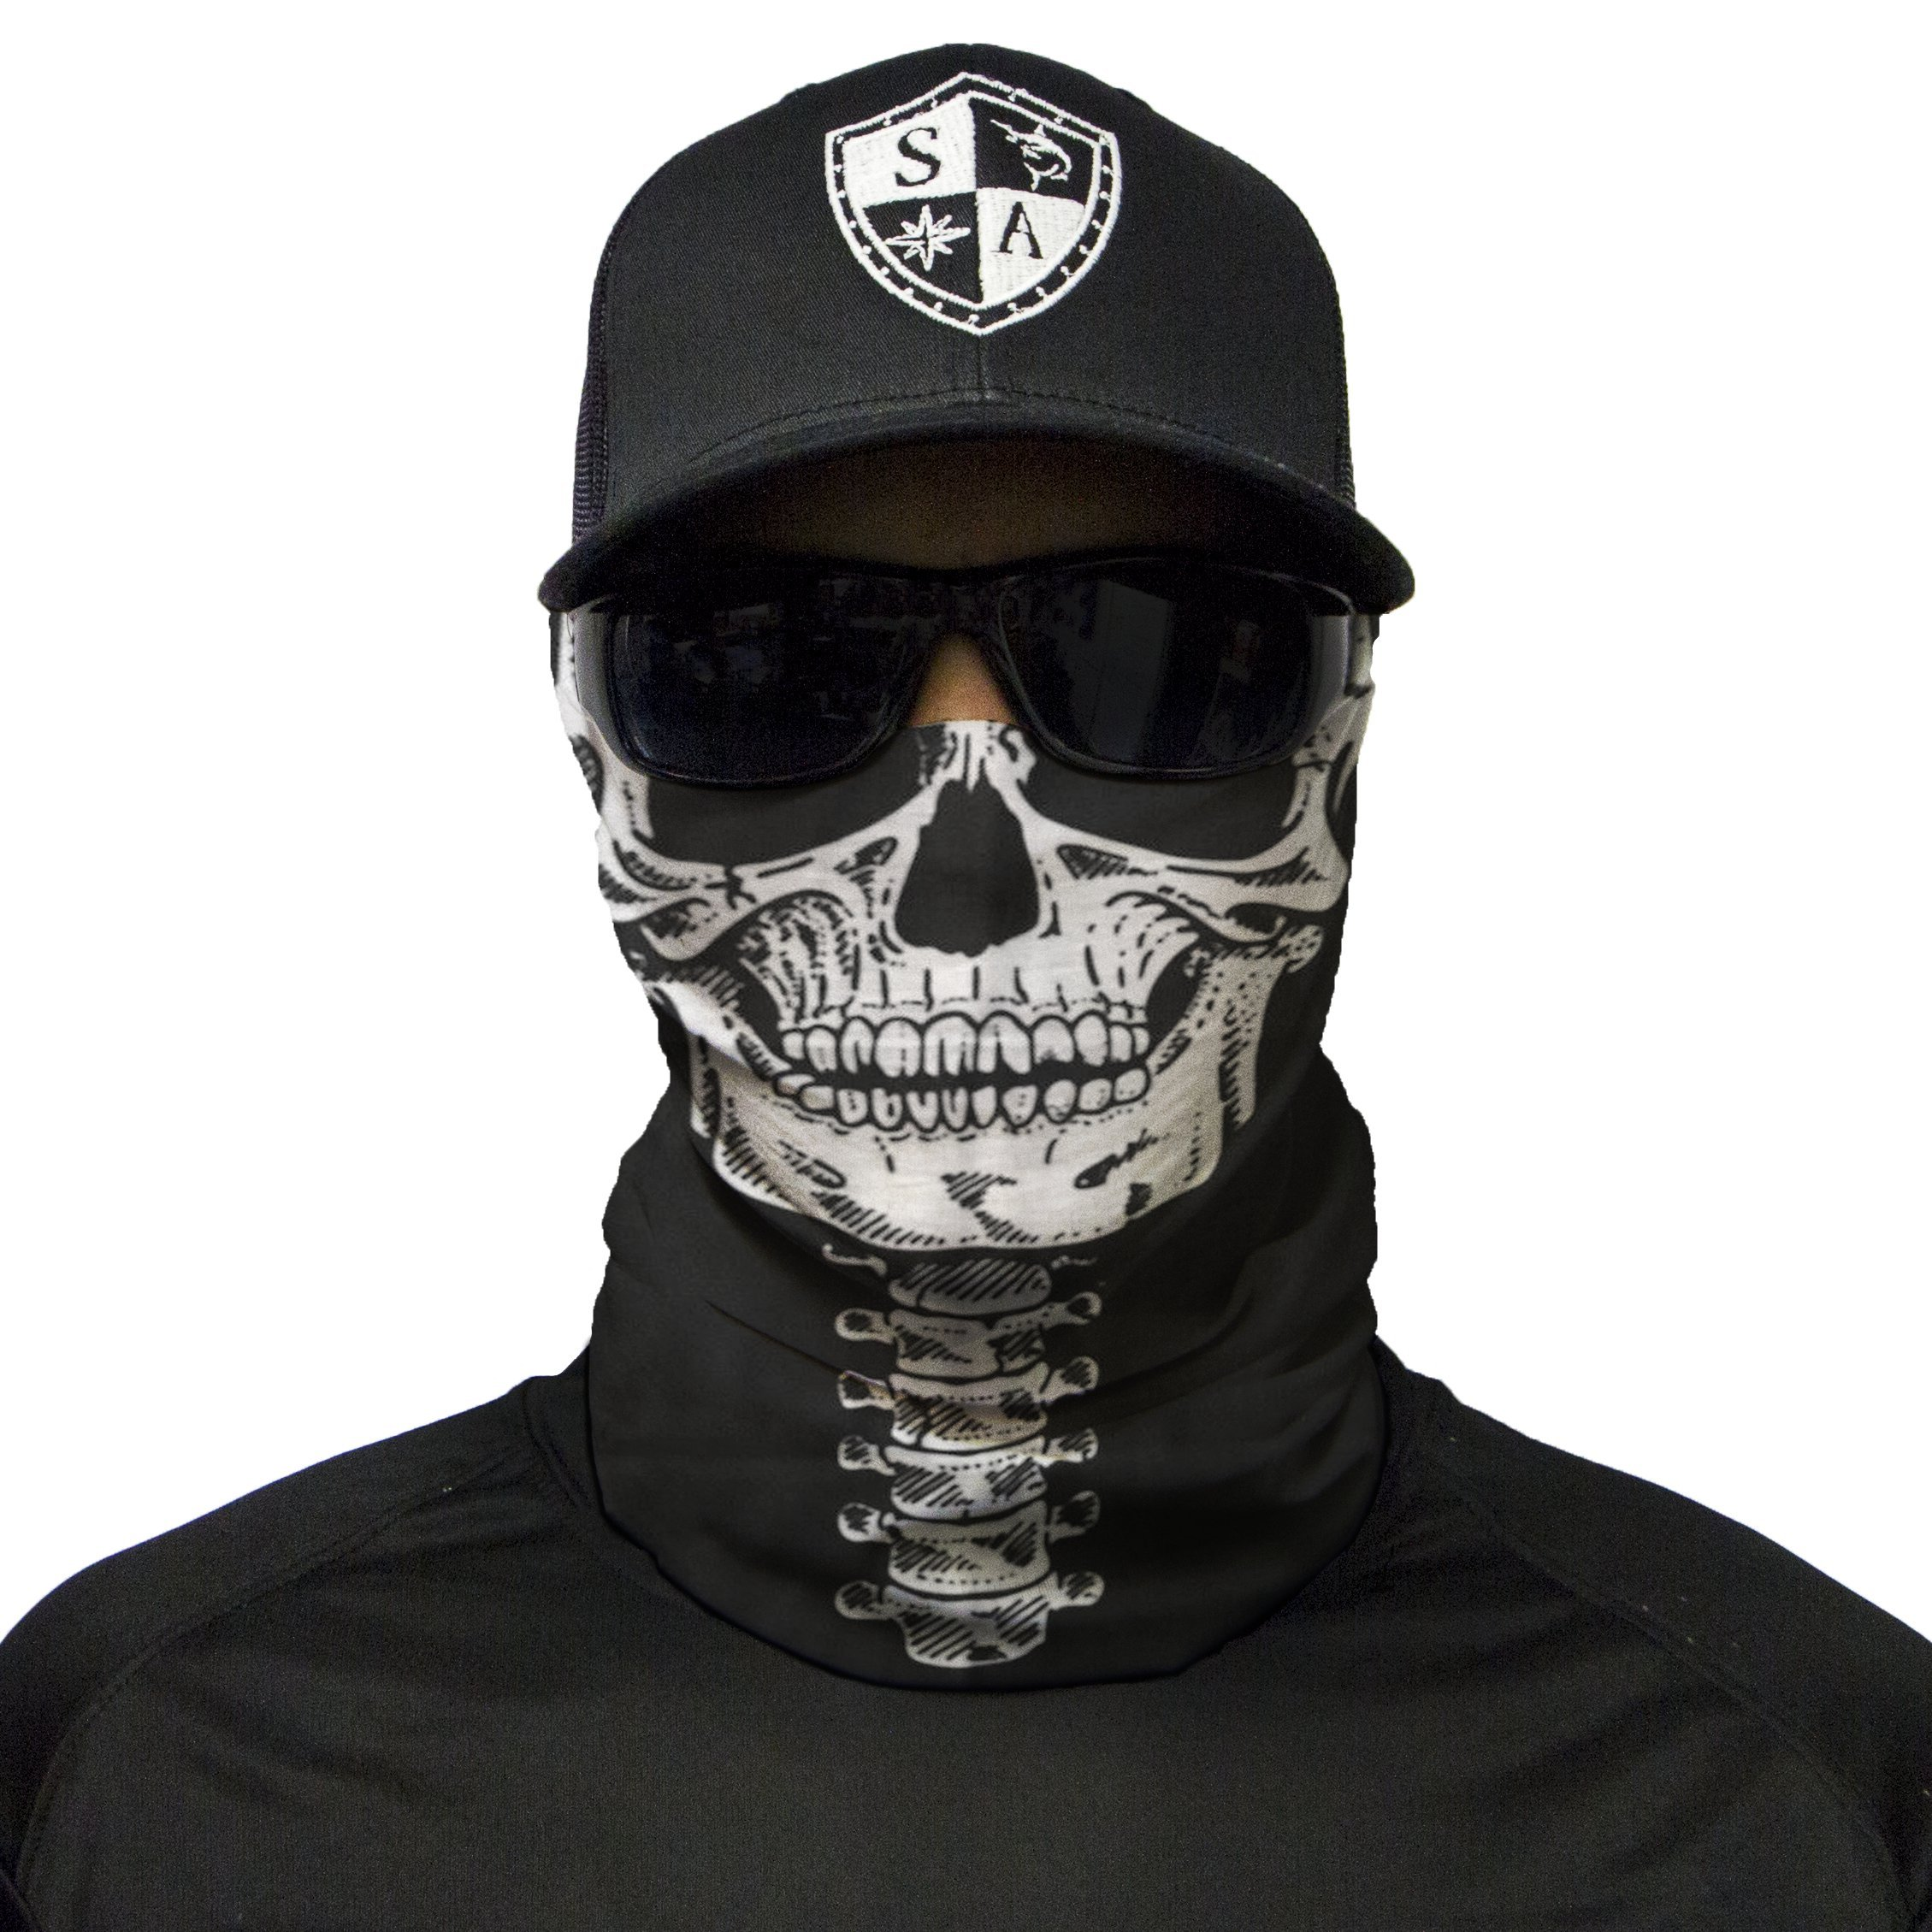 S A 1 Face Shield Skeleton Face Shield, Face Shield for Men and Face Shield for Women – UV Face Shield by S A (Image #1)